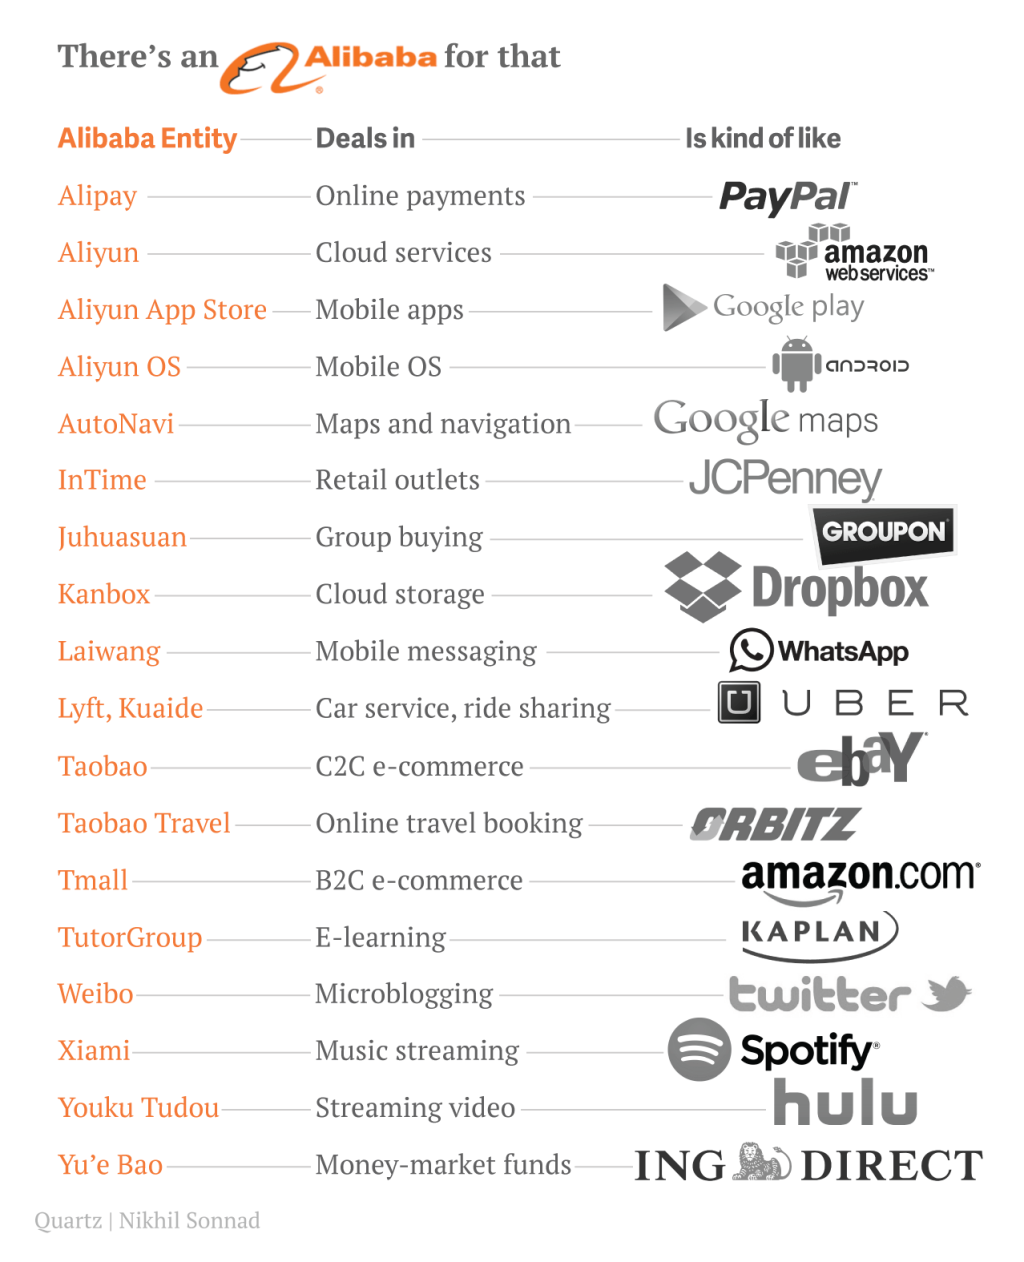 Alibaba Compared to American Companies